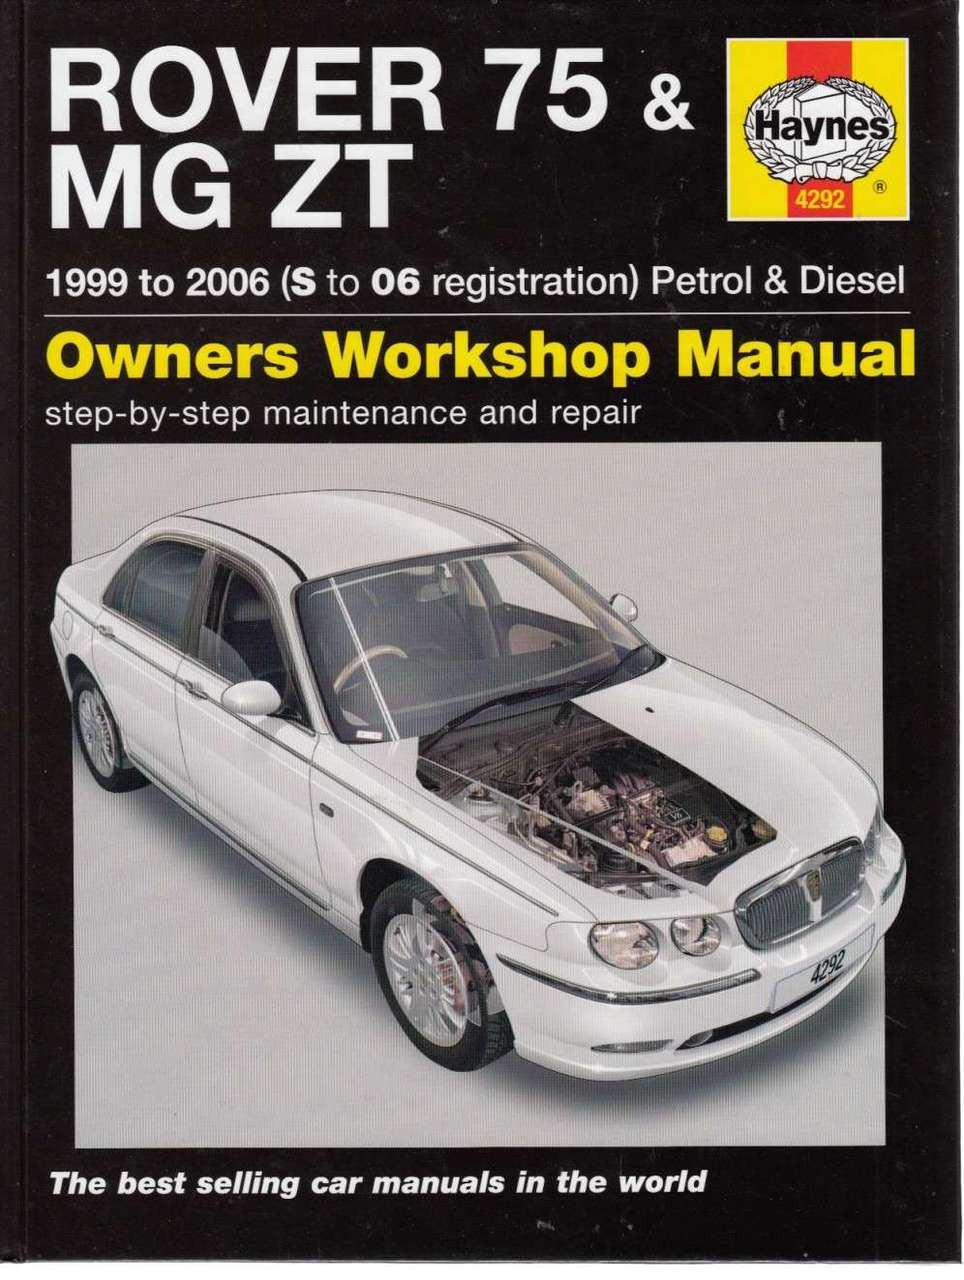 rover 75 mg zt petrol diesel 1999 2006 workshop manual rh automotobookshop com au 2006 f150 haynes manual 2006 gto haynes manual